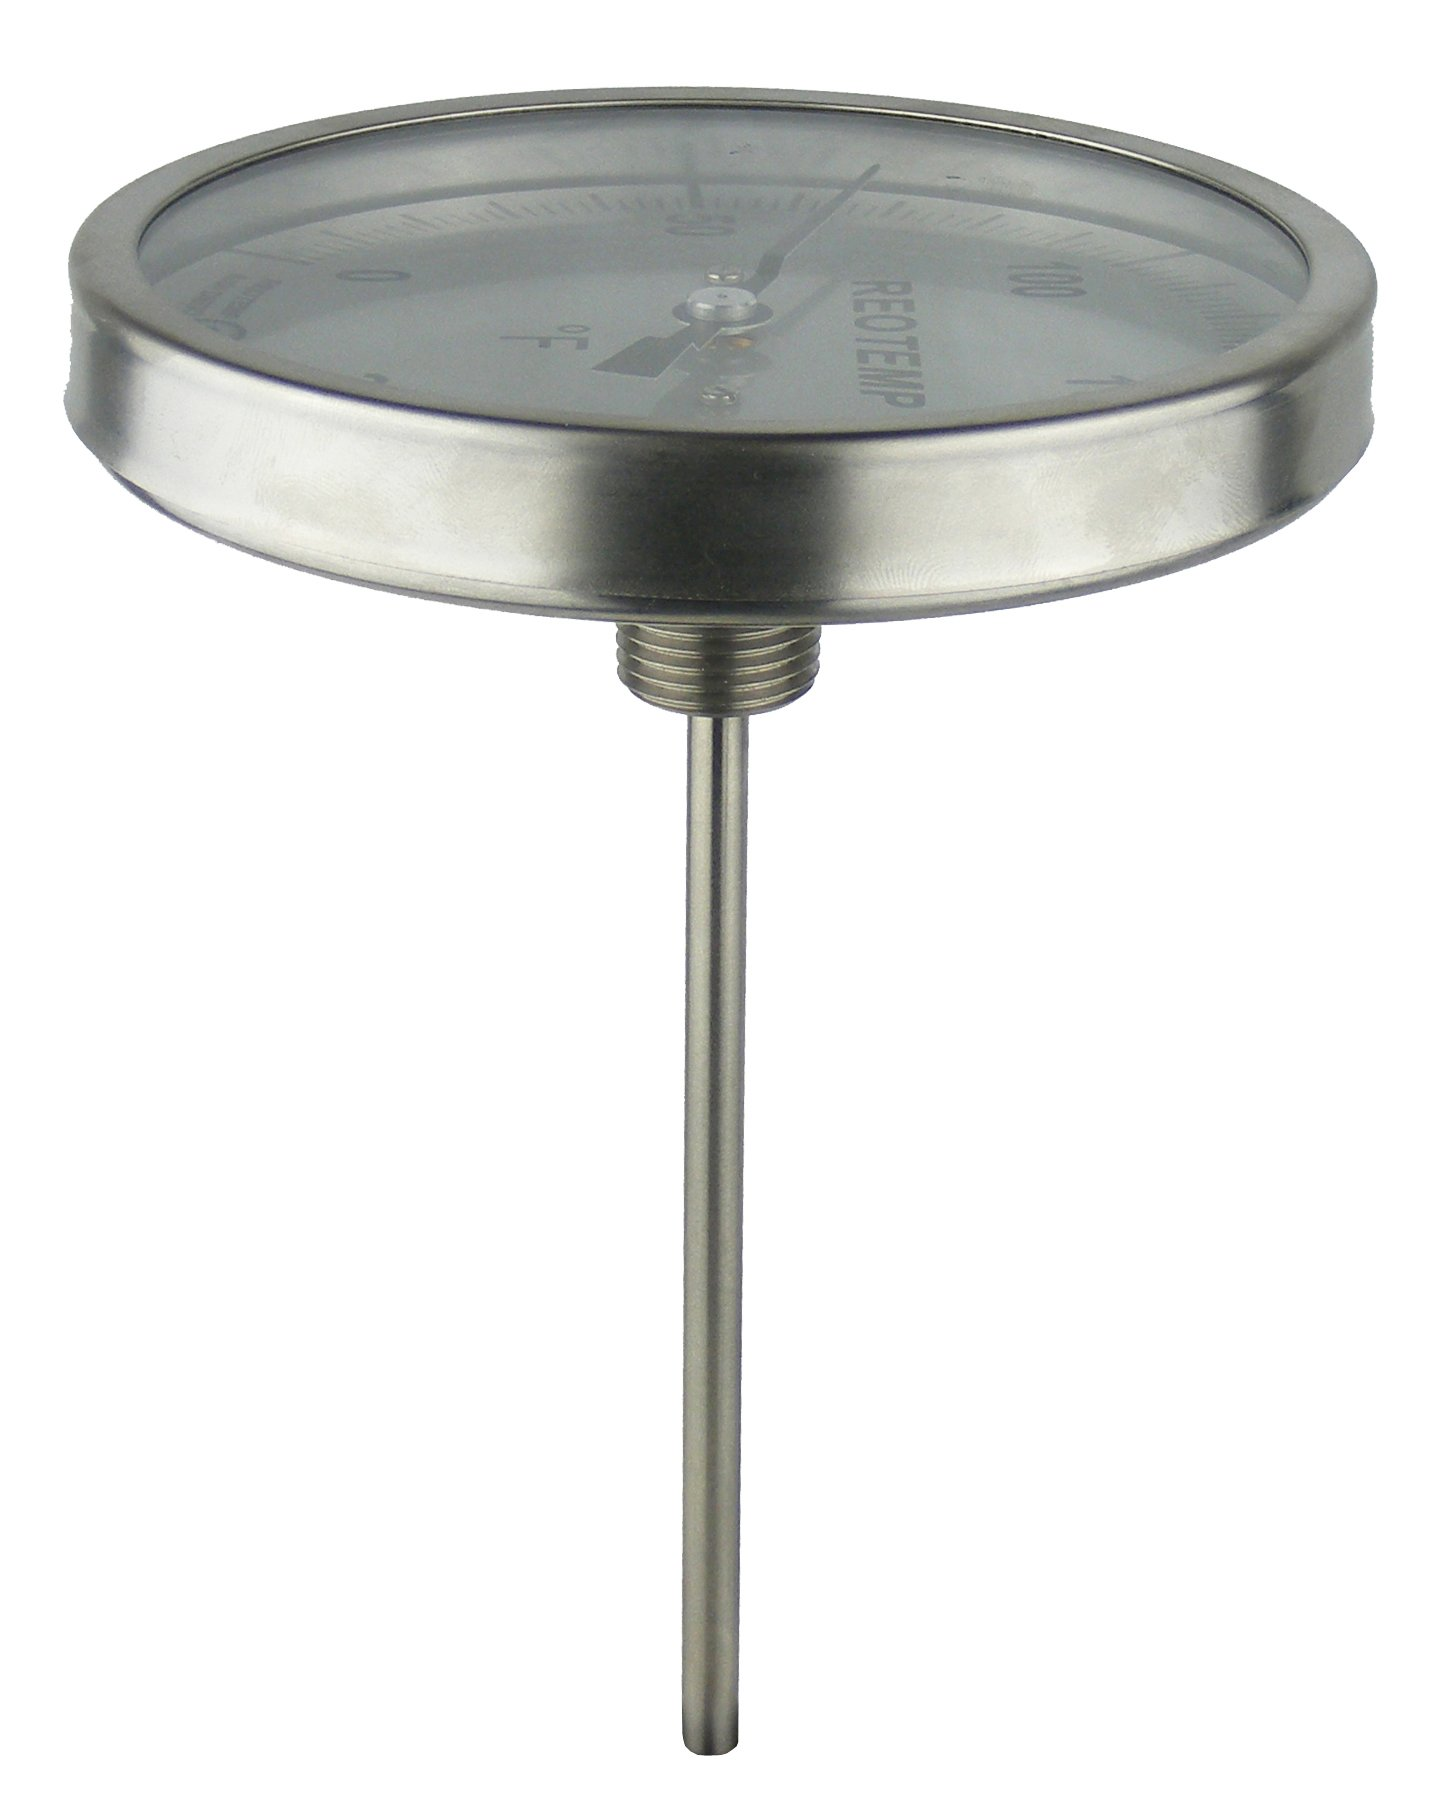 REOTEMP BB0251F43 Stainless Steel Bi Metal Thermometer, 2-1/2'' Stem, 1/2'' NPT Connection, 5'' Dial, 0 to 200 Degrees F, Back Mount